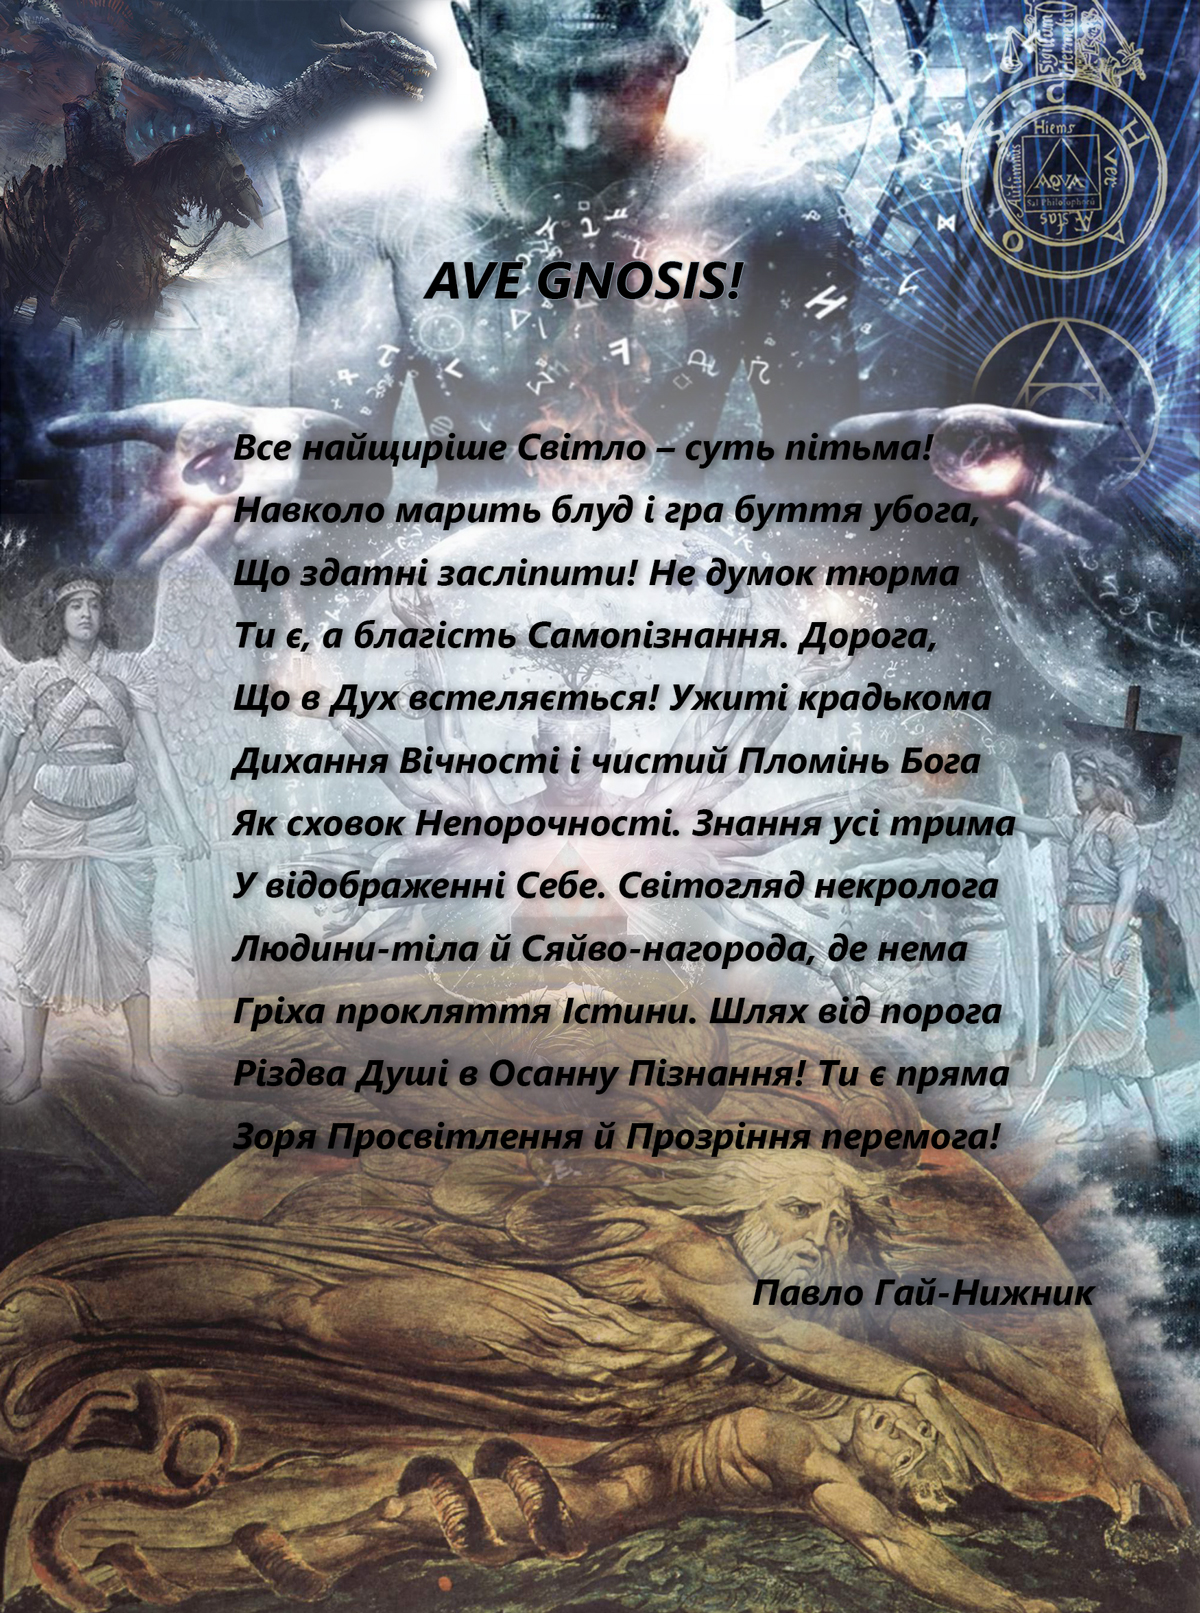 «AVE GNOSIS!»